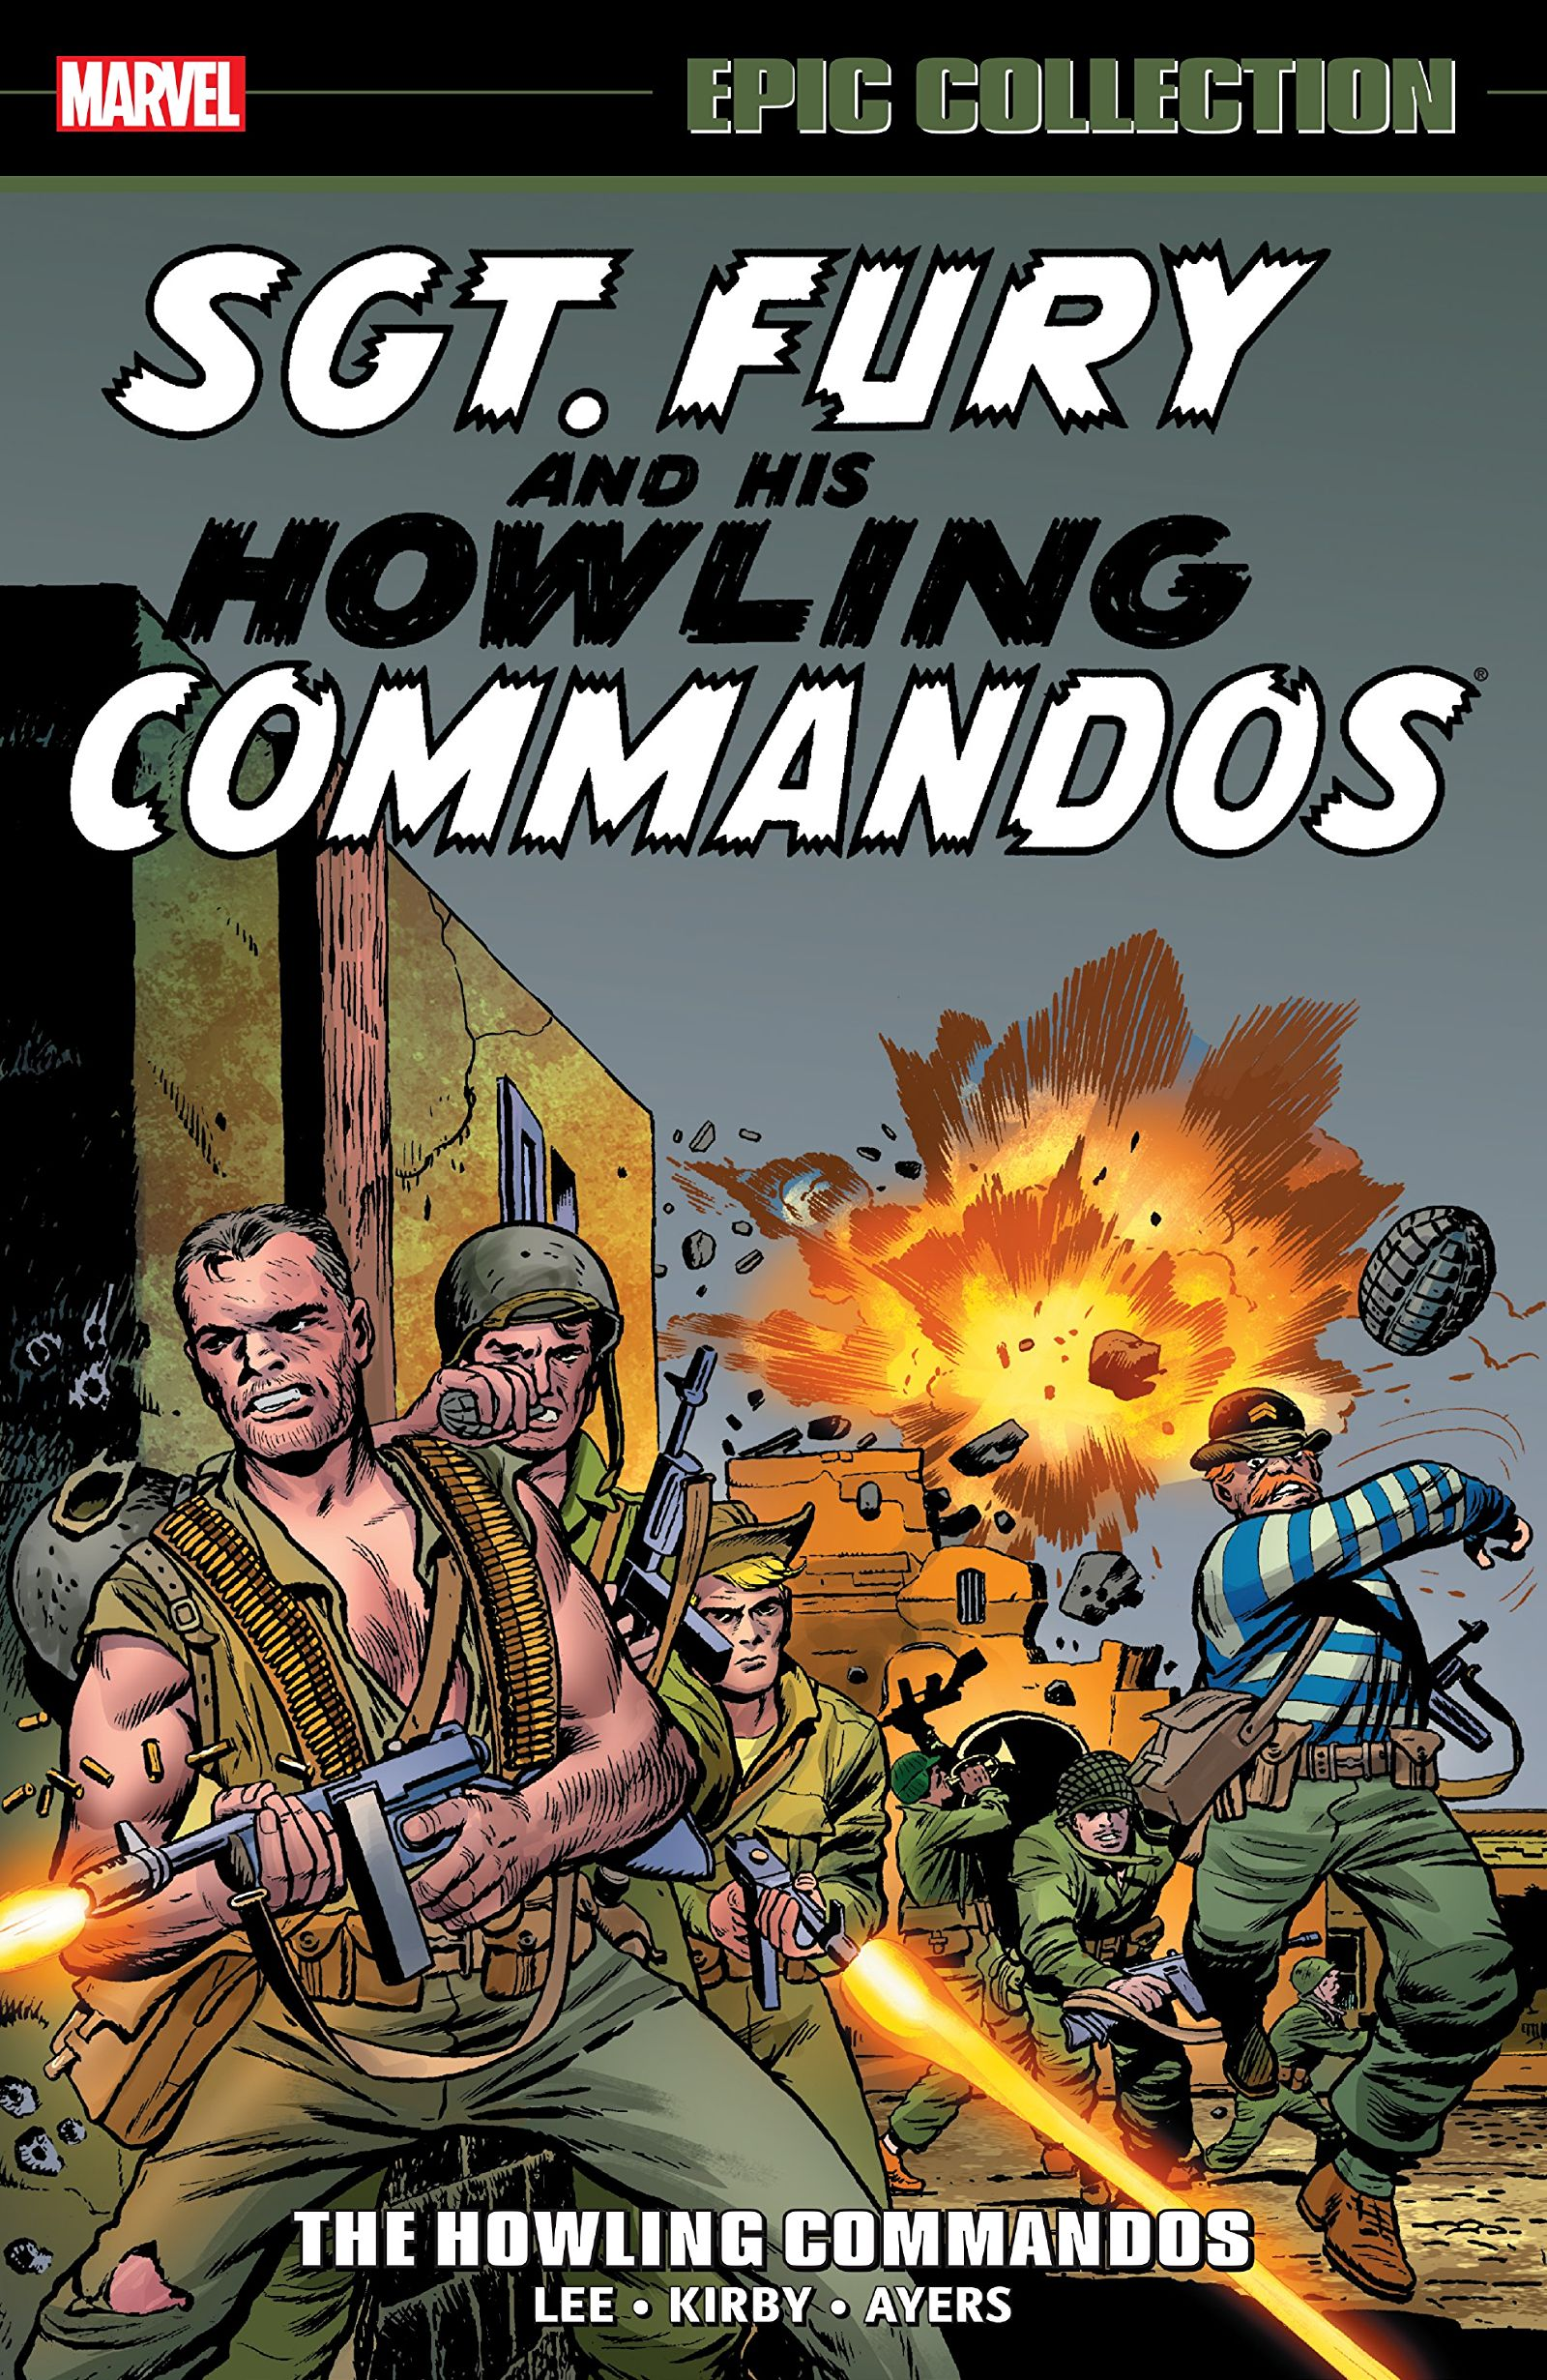 'Sgt. Fury Epic Collection: The Howling Commandos' TPB Review